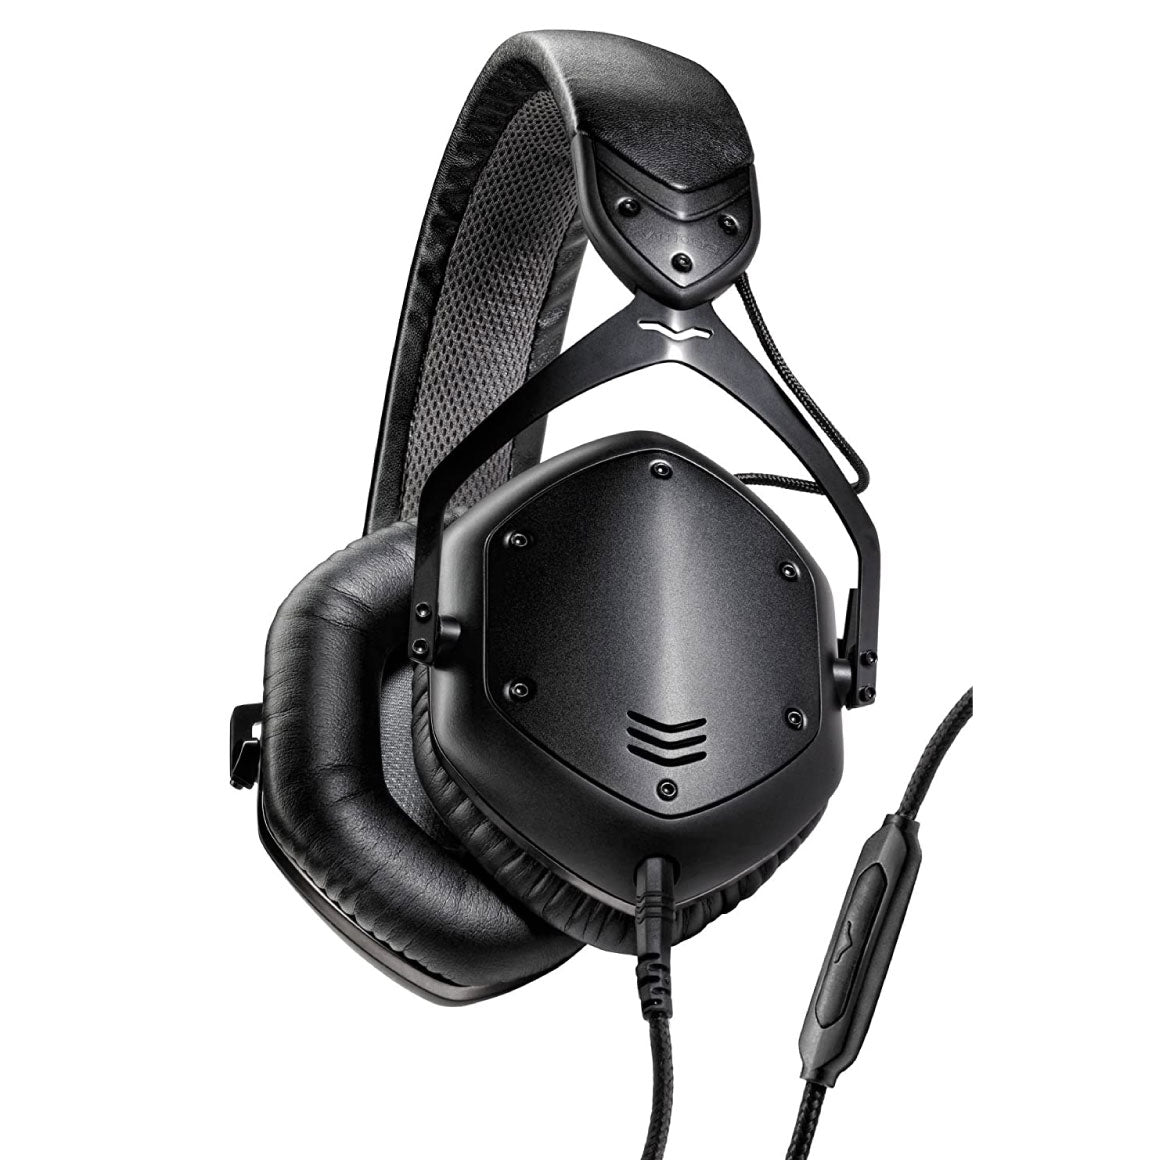 V-MODA - Crossfade LP2 vs competitors